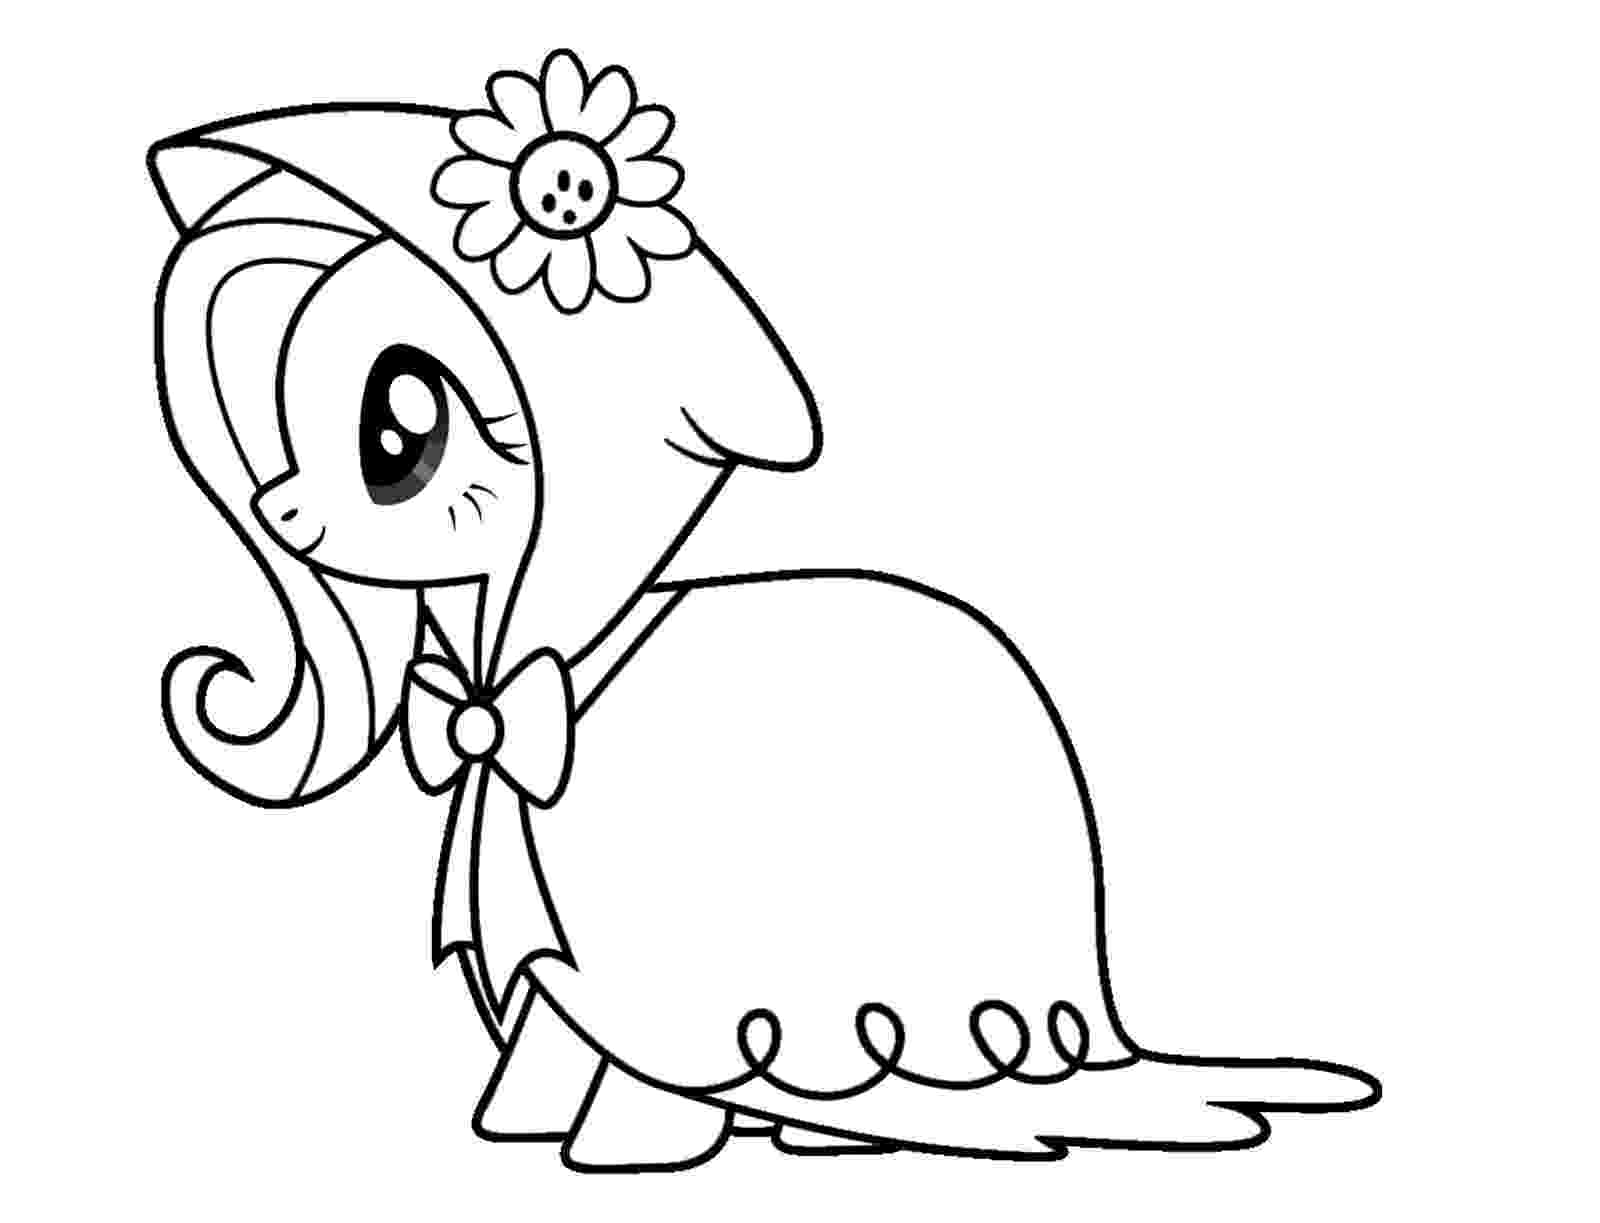 my little pony coloring pages fluttershy my little pony fluttershy coloring pages little pages fluttershy my pony coloring